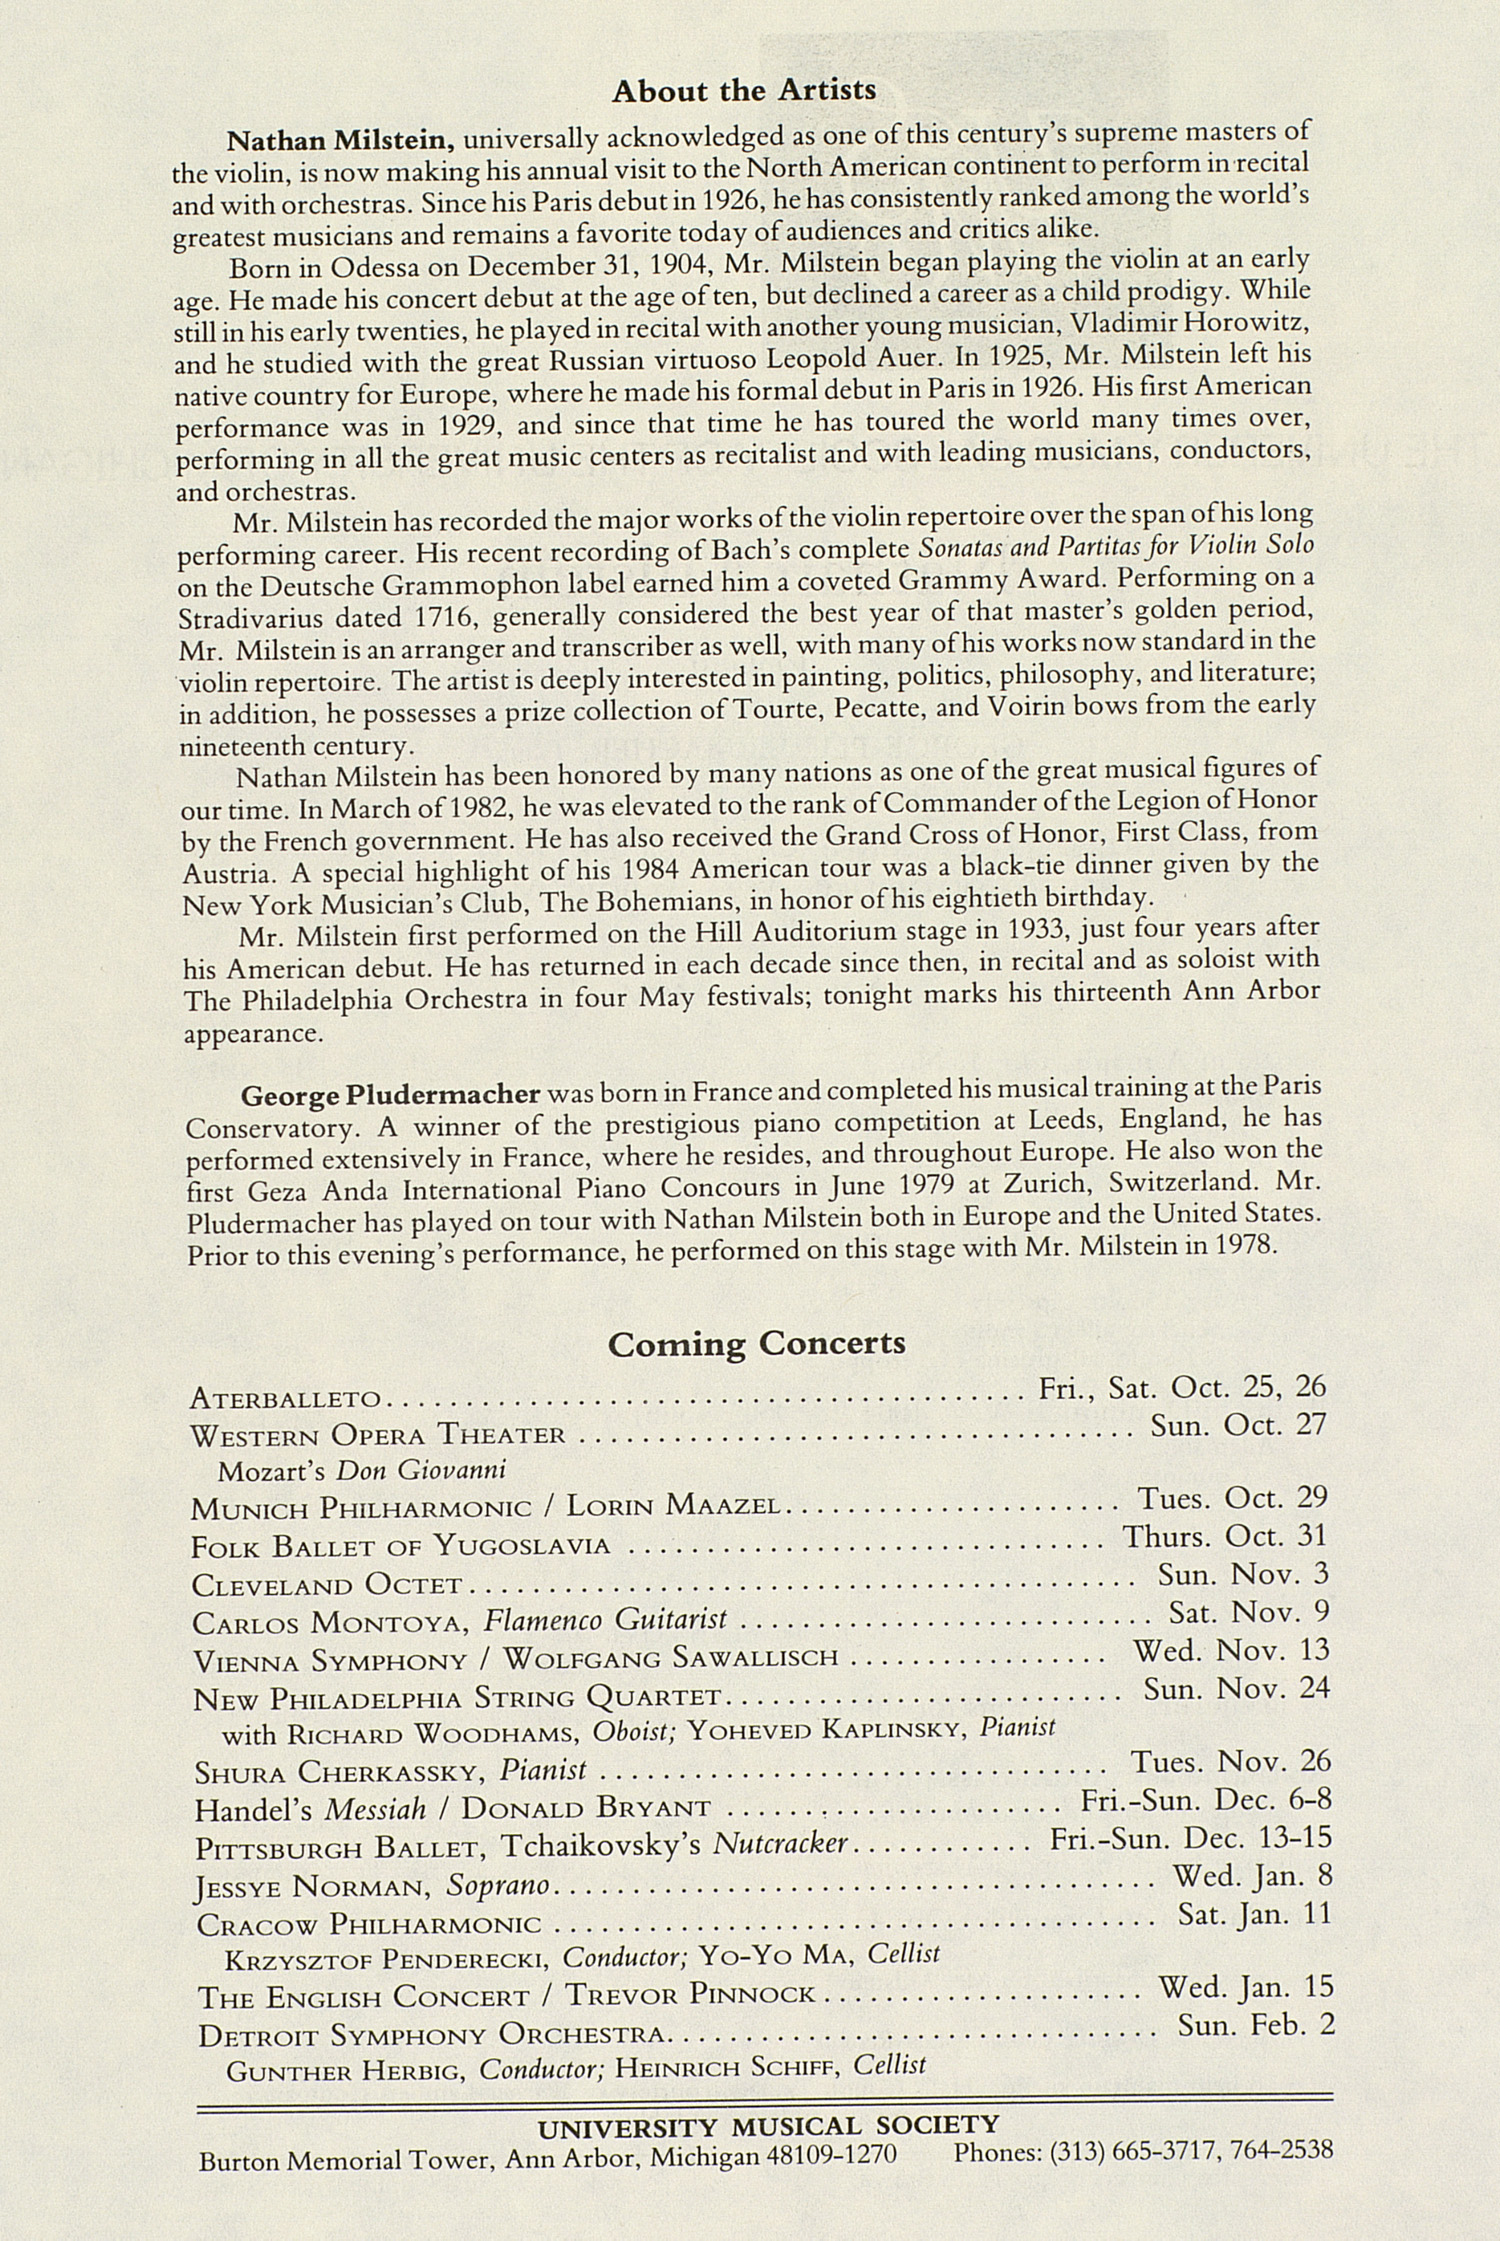 UMS Concert Program, October 24, 1985: International Presentations Of Music & Dance --  image